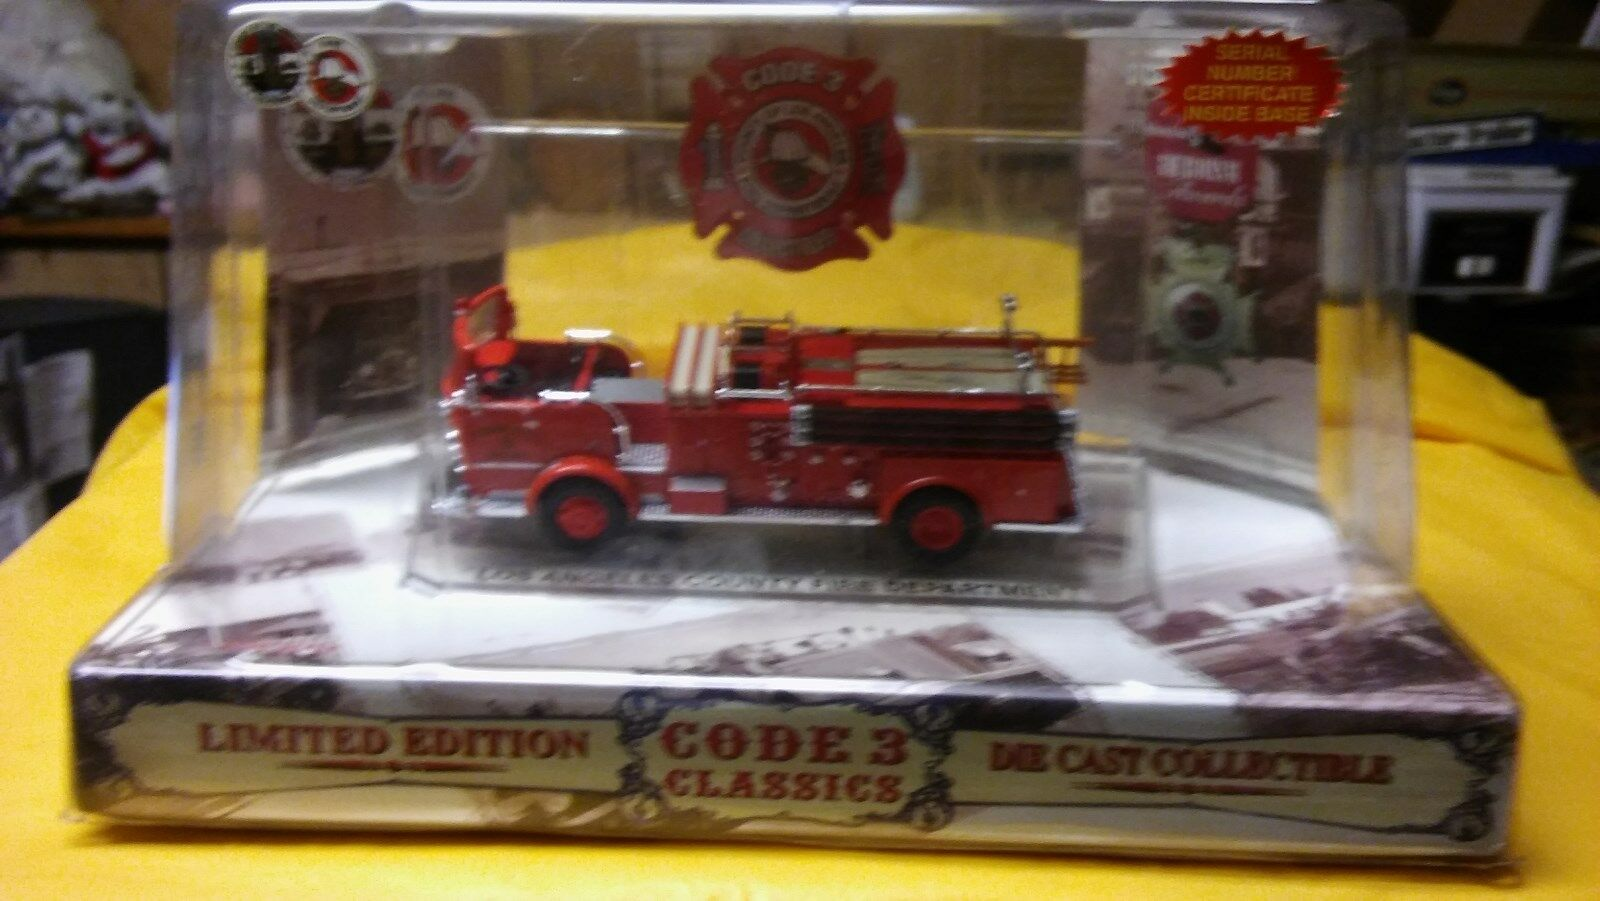 Code 3 - LOS ANGELES County Fire Dept Crown Pumper (blank) - Mint in Box